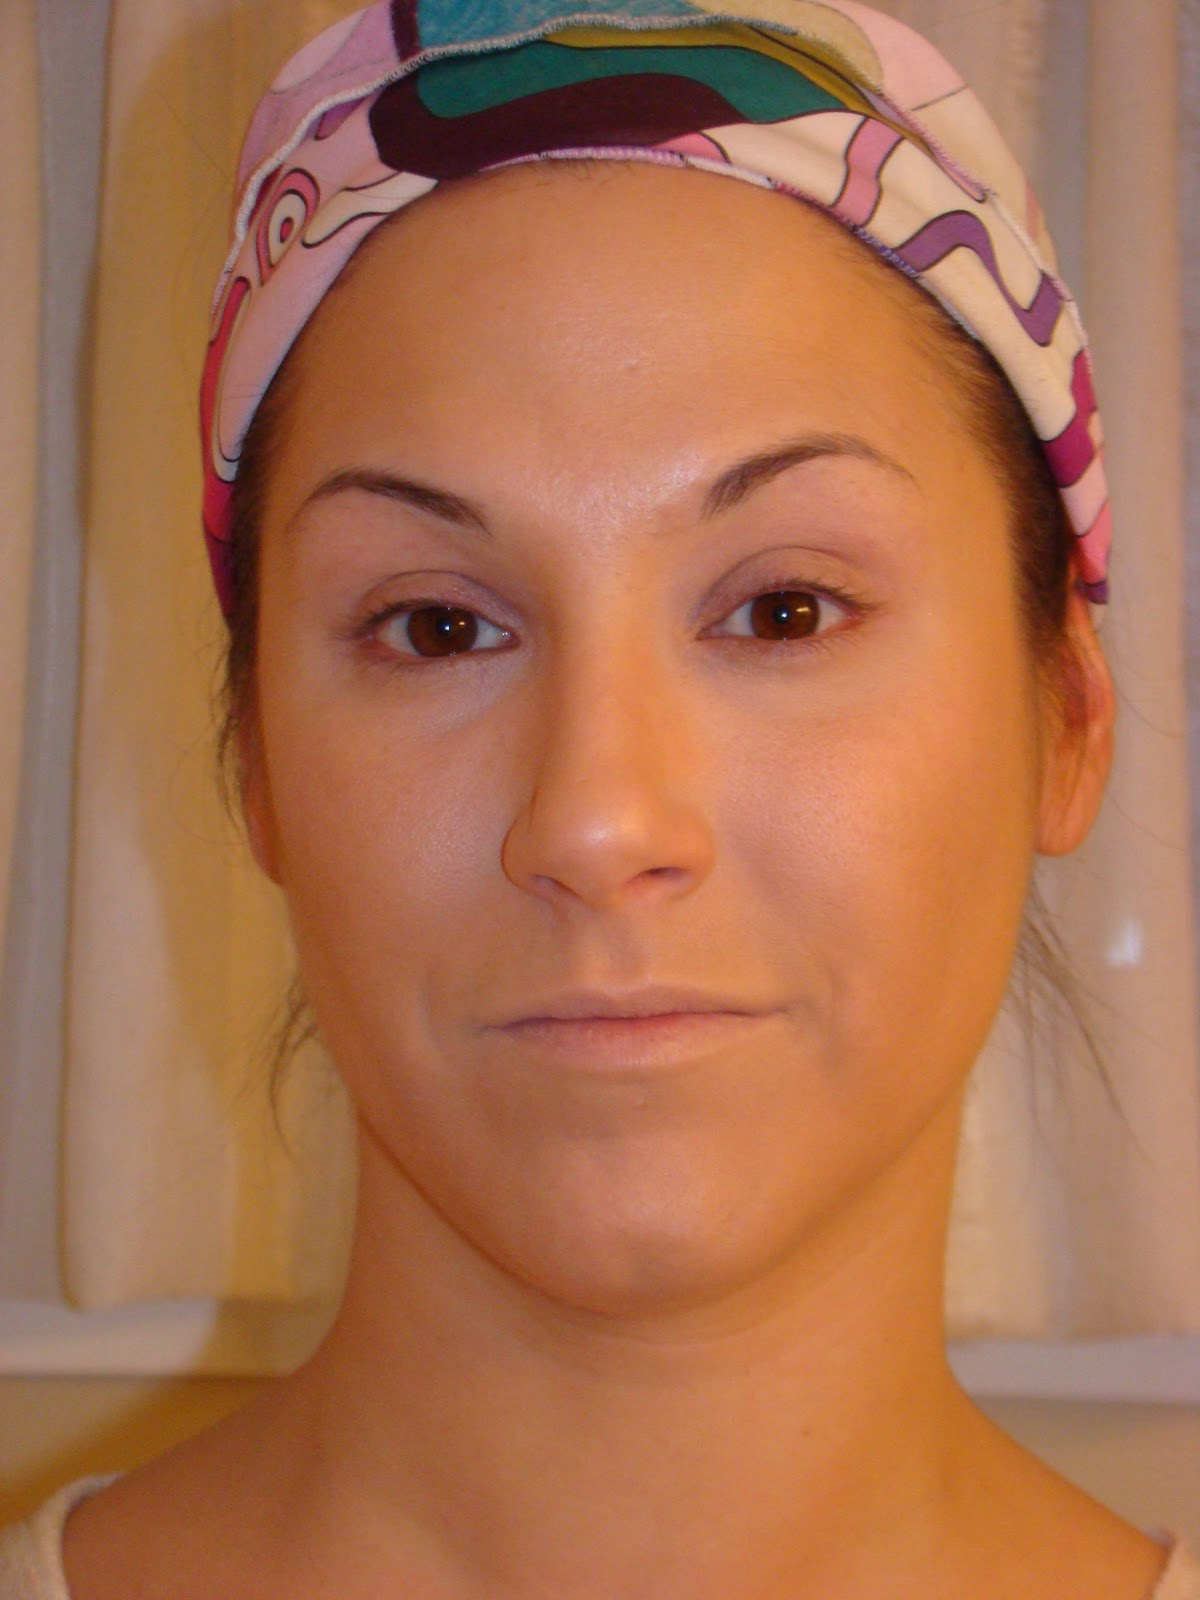 Neutral Boring Mean video makeup application Not Does Haute natural Holistically